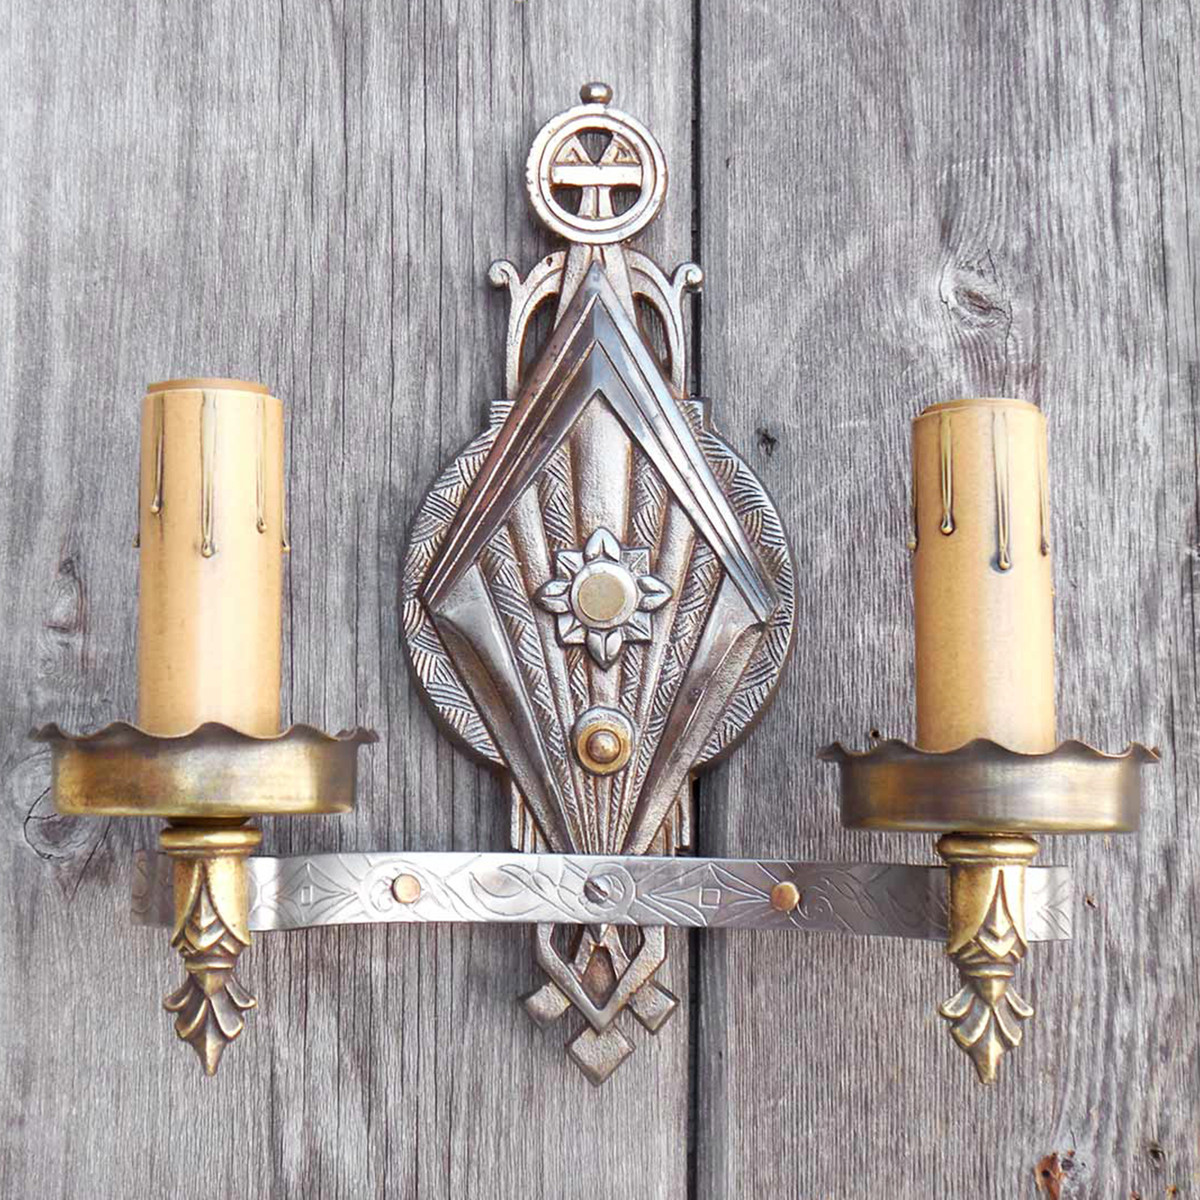 L15030 - Antique Art Deco Double Arm Candle Sconce